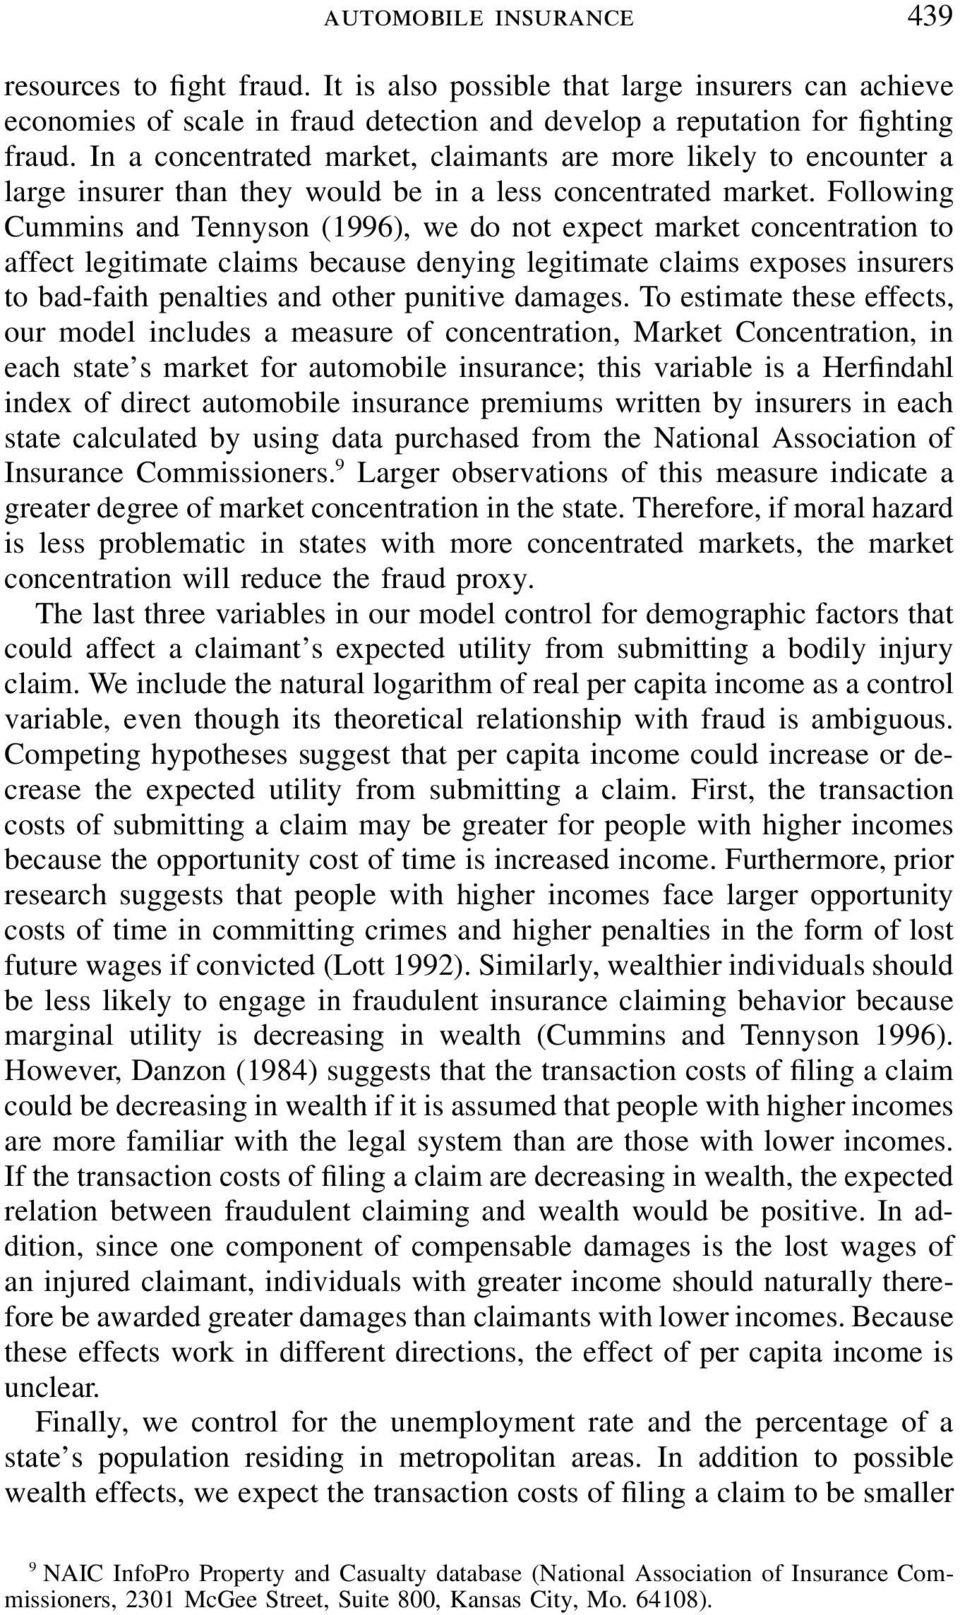 Following Cummins and Tennyson (1996), we do not expect market concentration to affect legitimate claims because denying legitimate claims exposes insurers to bad-faith penalties and other punitive